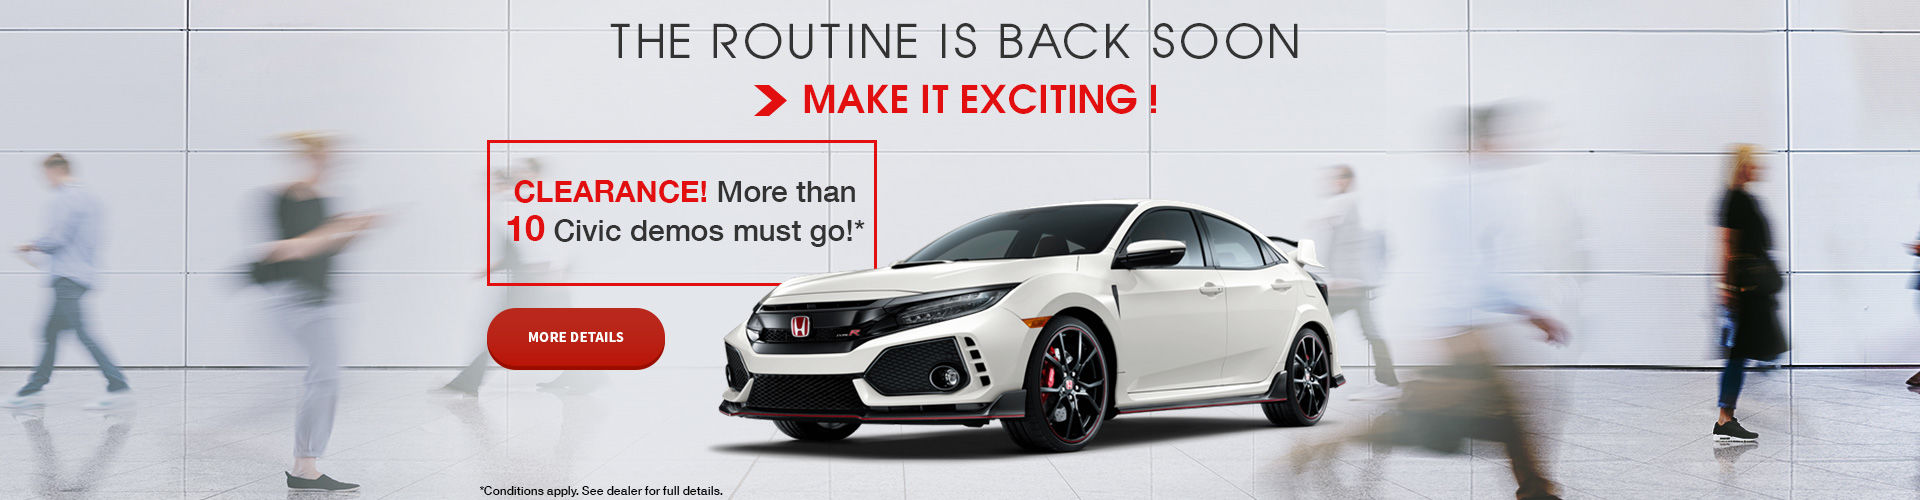 Clearance! More Than 10 Civic Demos to Go!